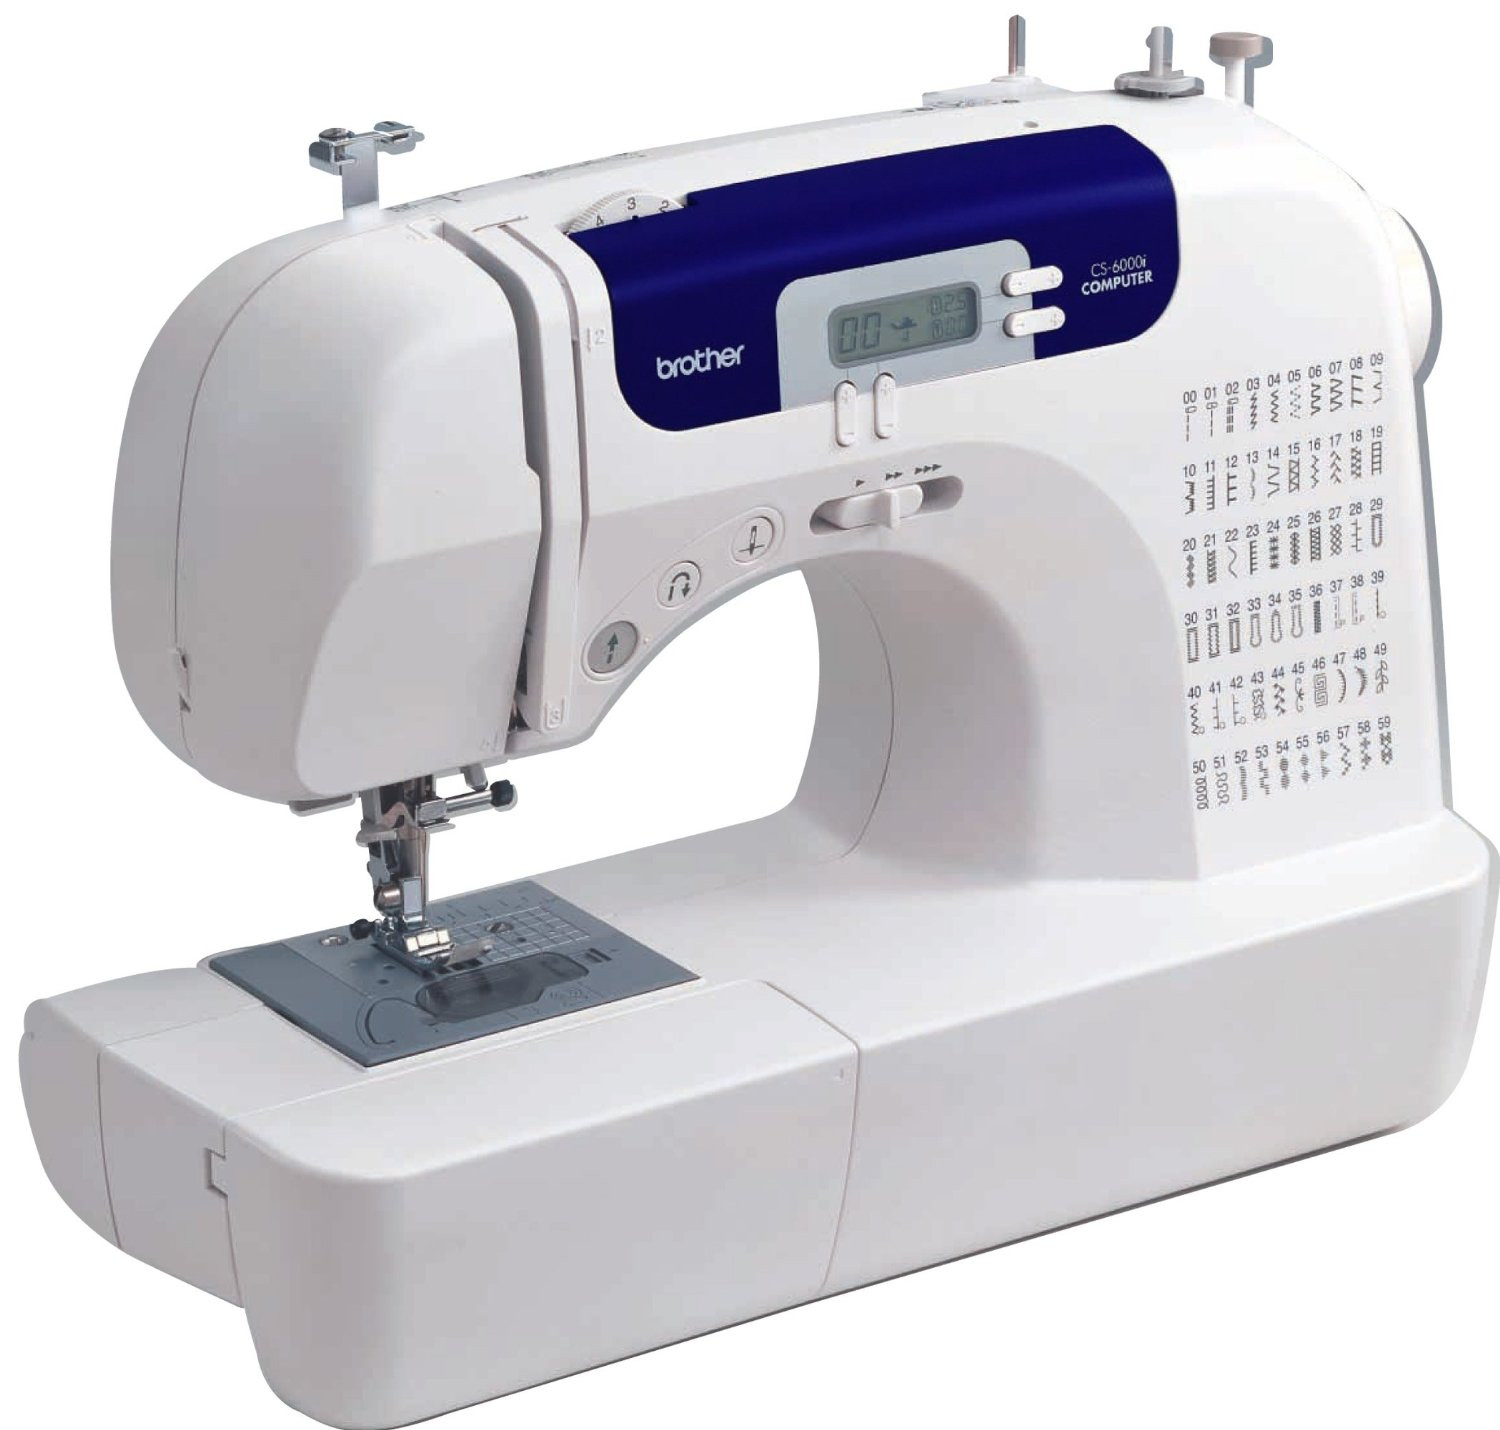 Sewing and Embroidery Machine Unique Grandma Reviews the Best Sewing Machine for Beginners Of Unique 48 Pics Sewing and Embroidery Machine